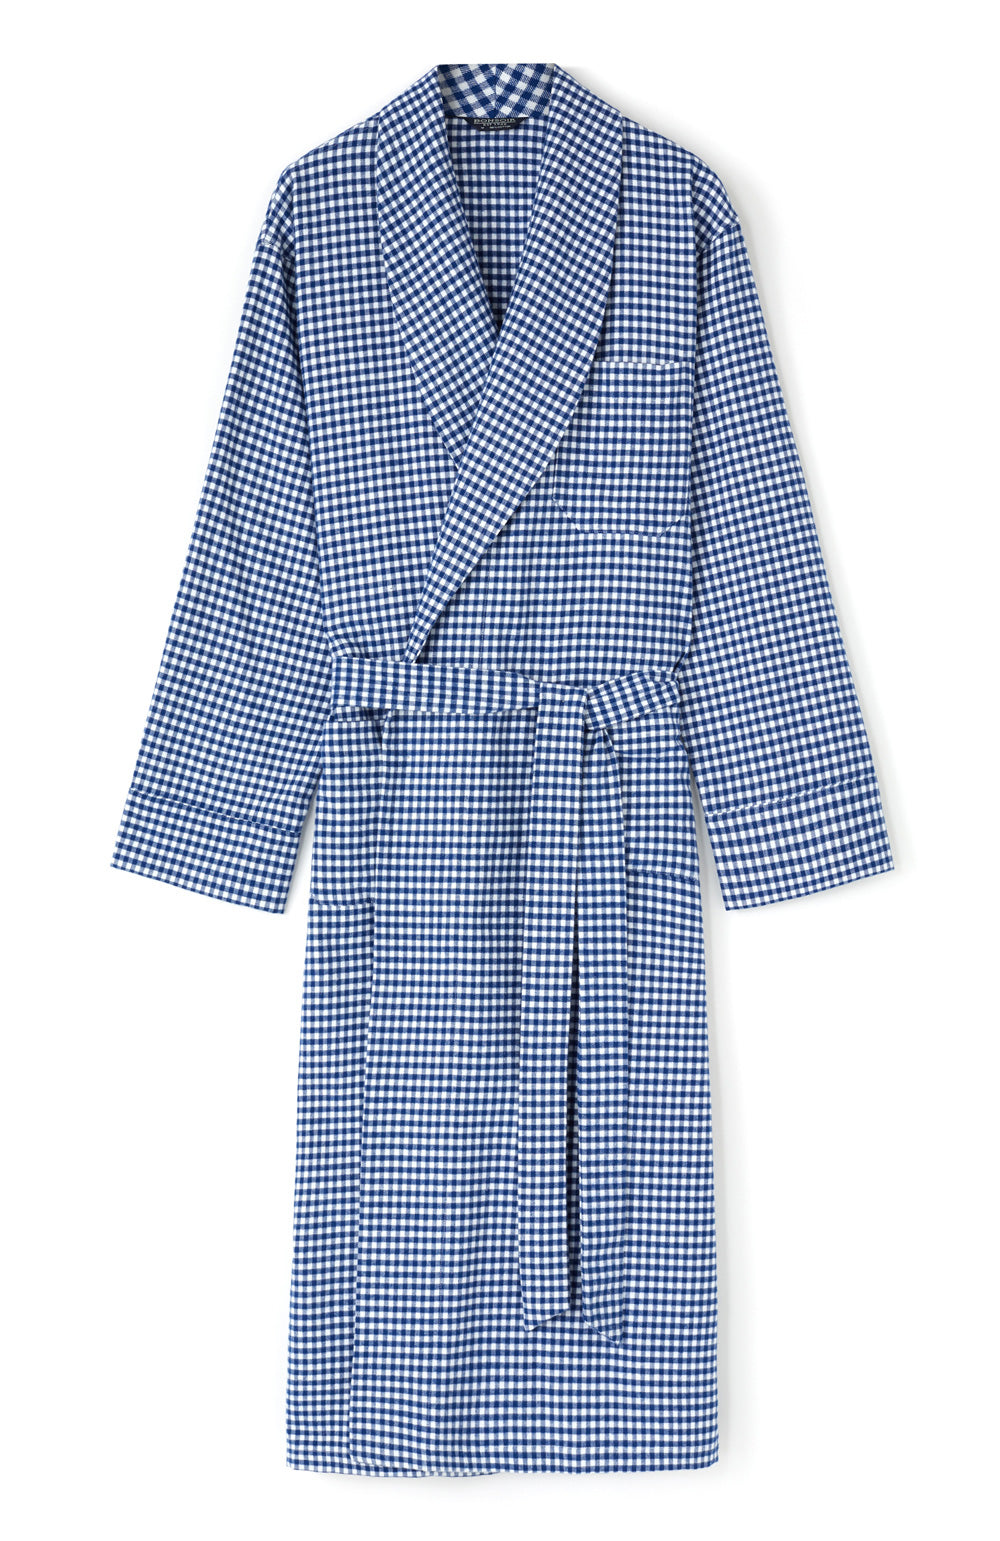 Brushed Cotton Navy Gingham Gown | Bonsoir of London